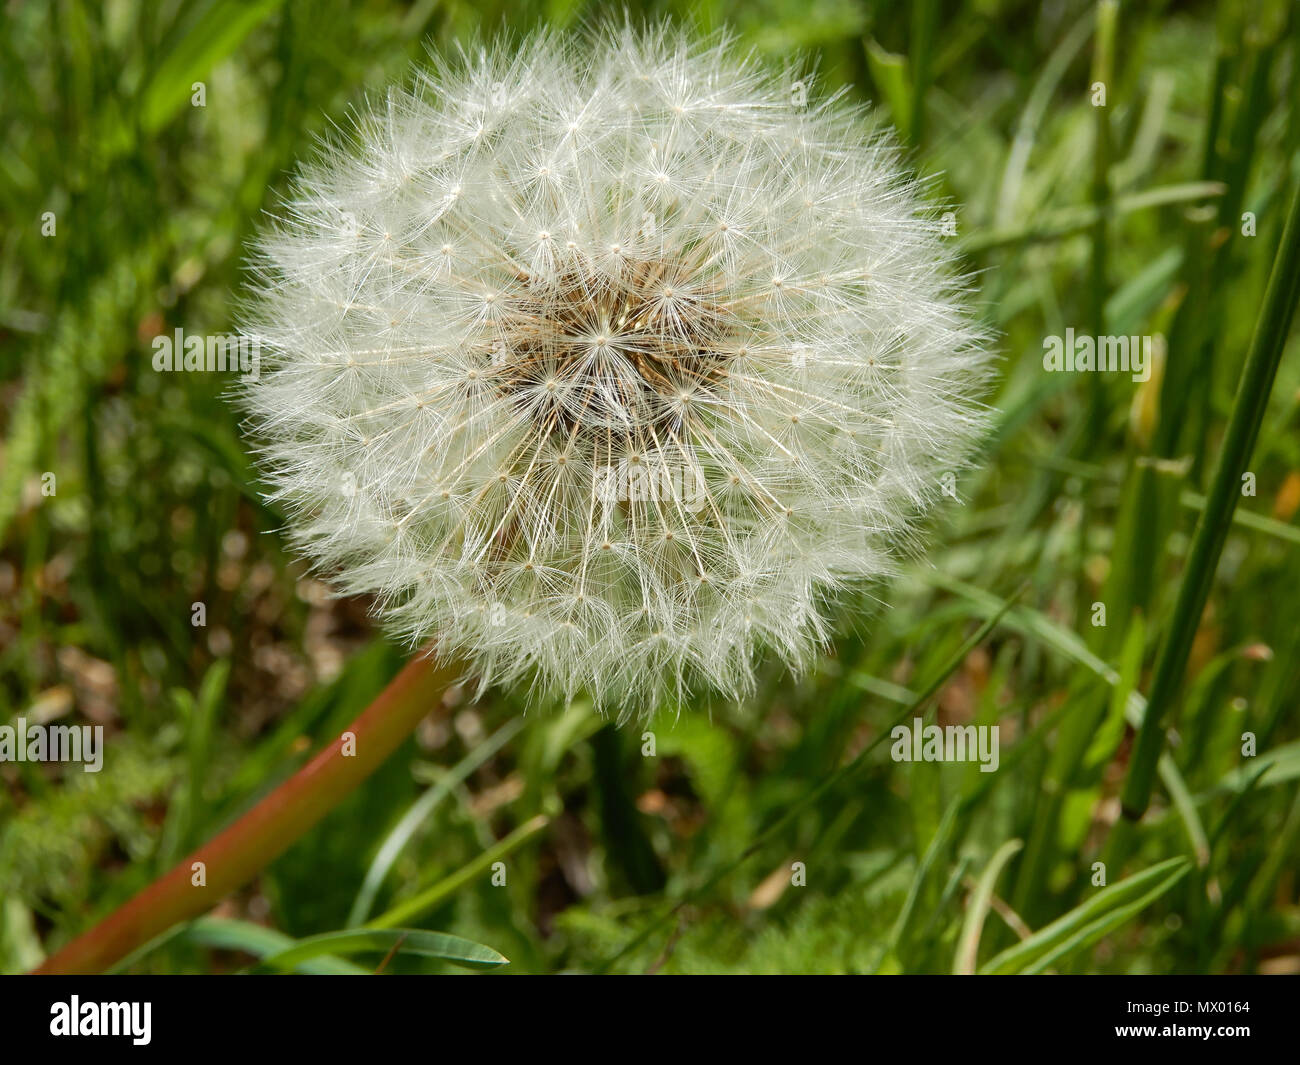 dandelion flower meaning stock photos & dandelion flower meaning